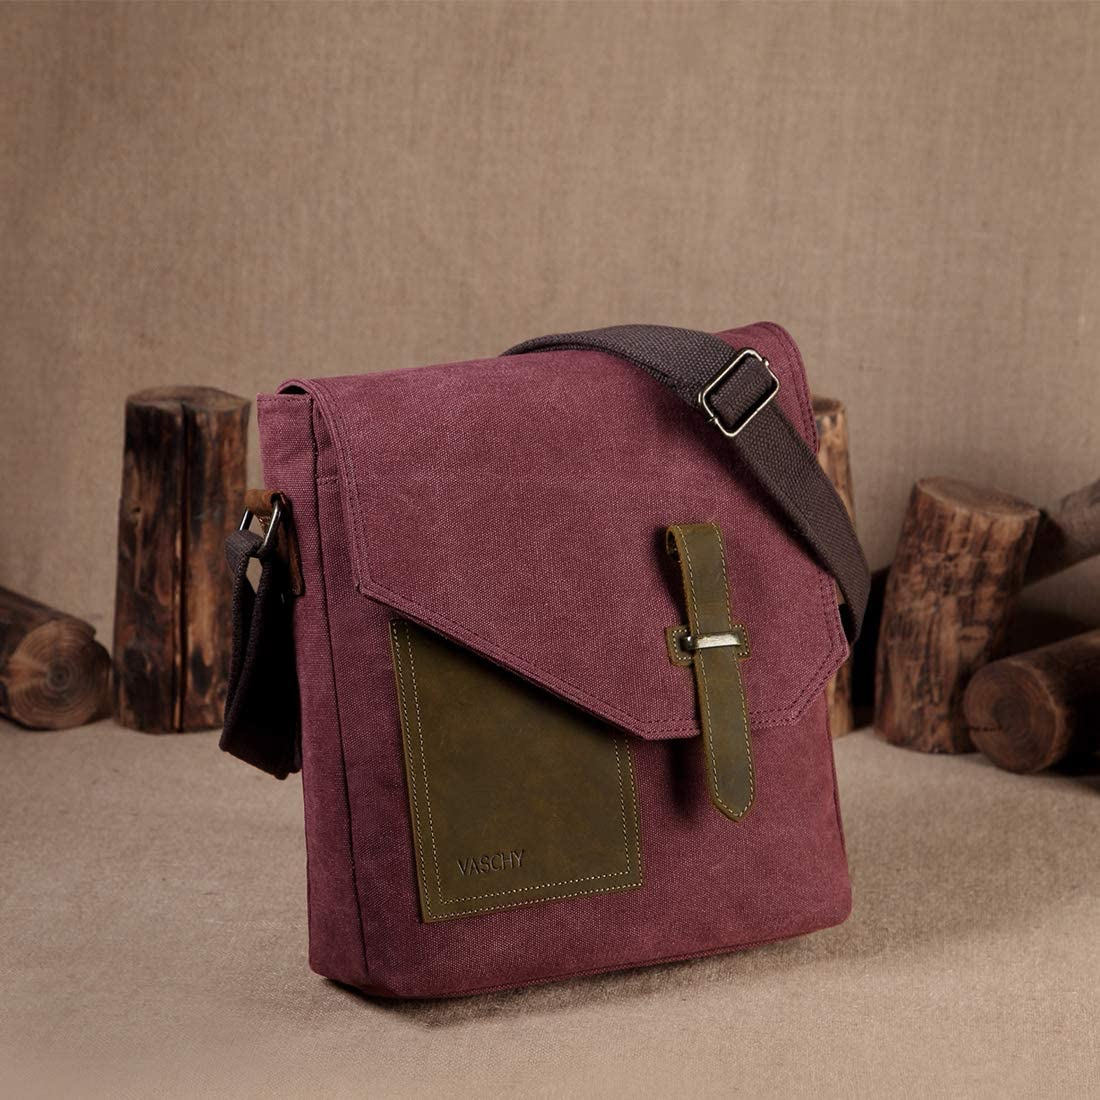 Small Messenger Bag,VASCHY Vintage Canvas Leather Lightweight Crossbody Bag